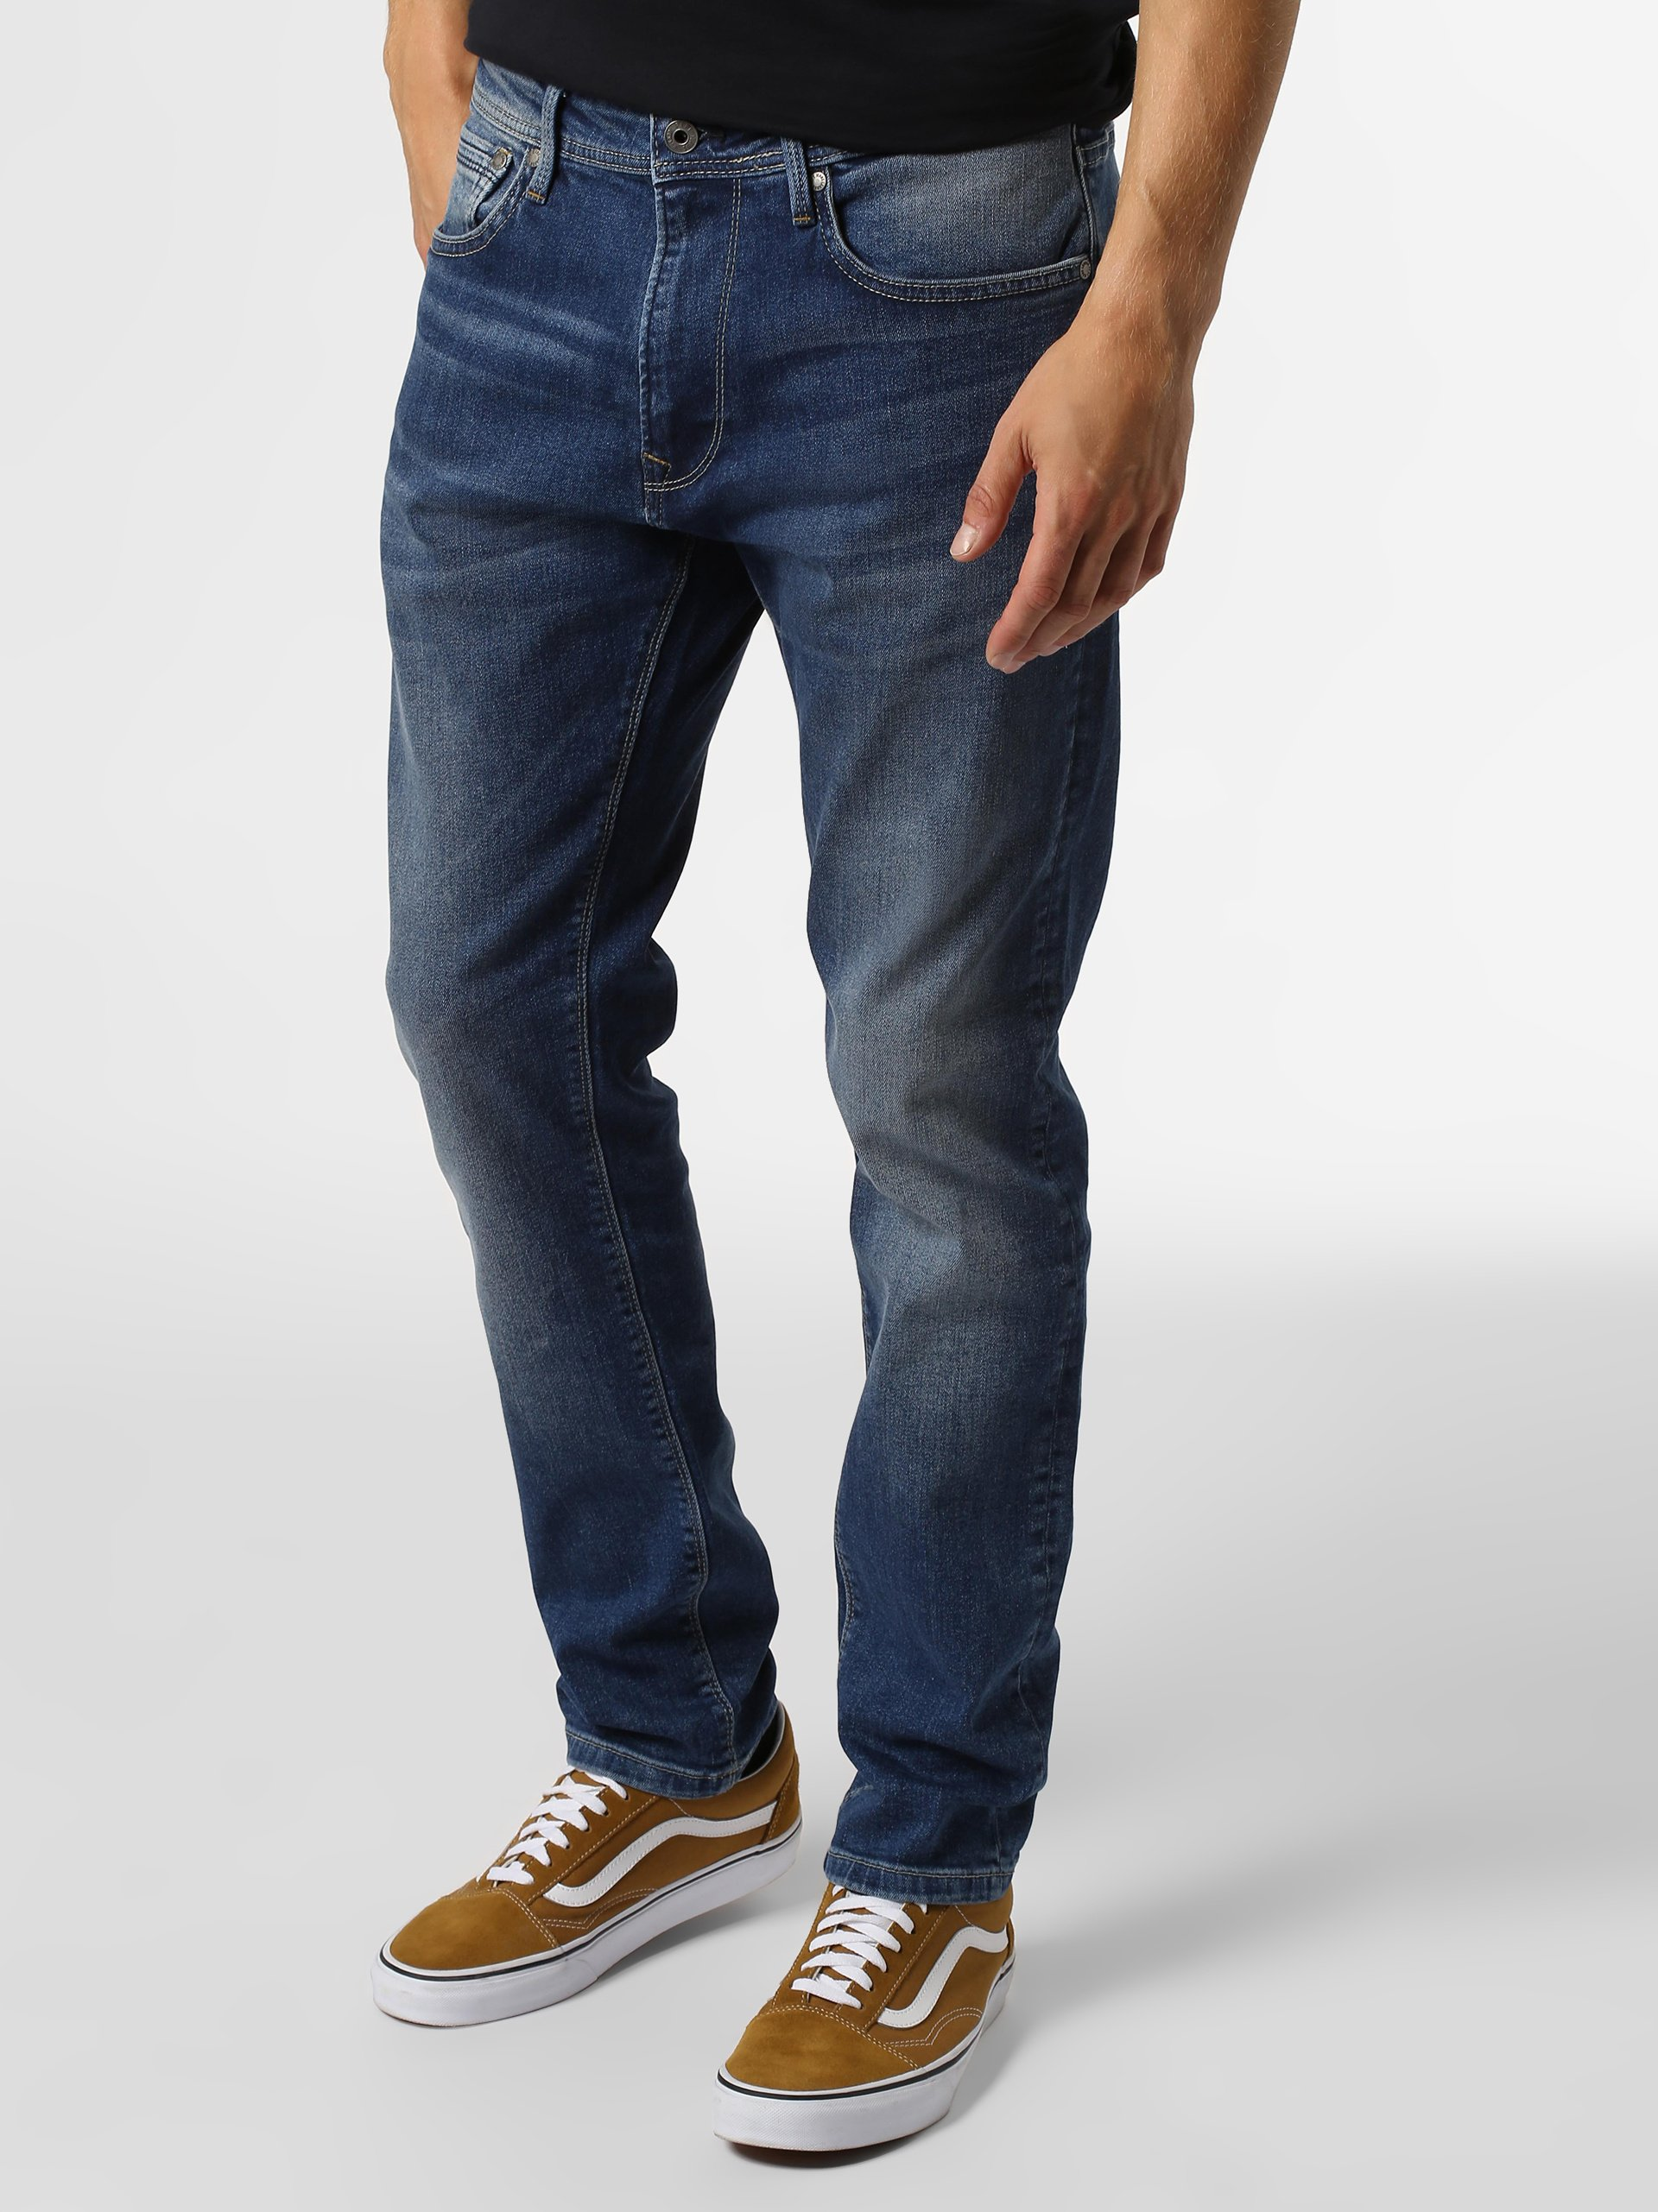 Pepe Jeans Jeansy damskie – Stainley